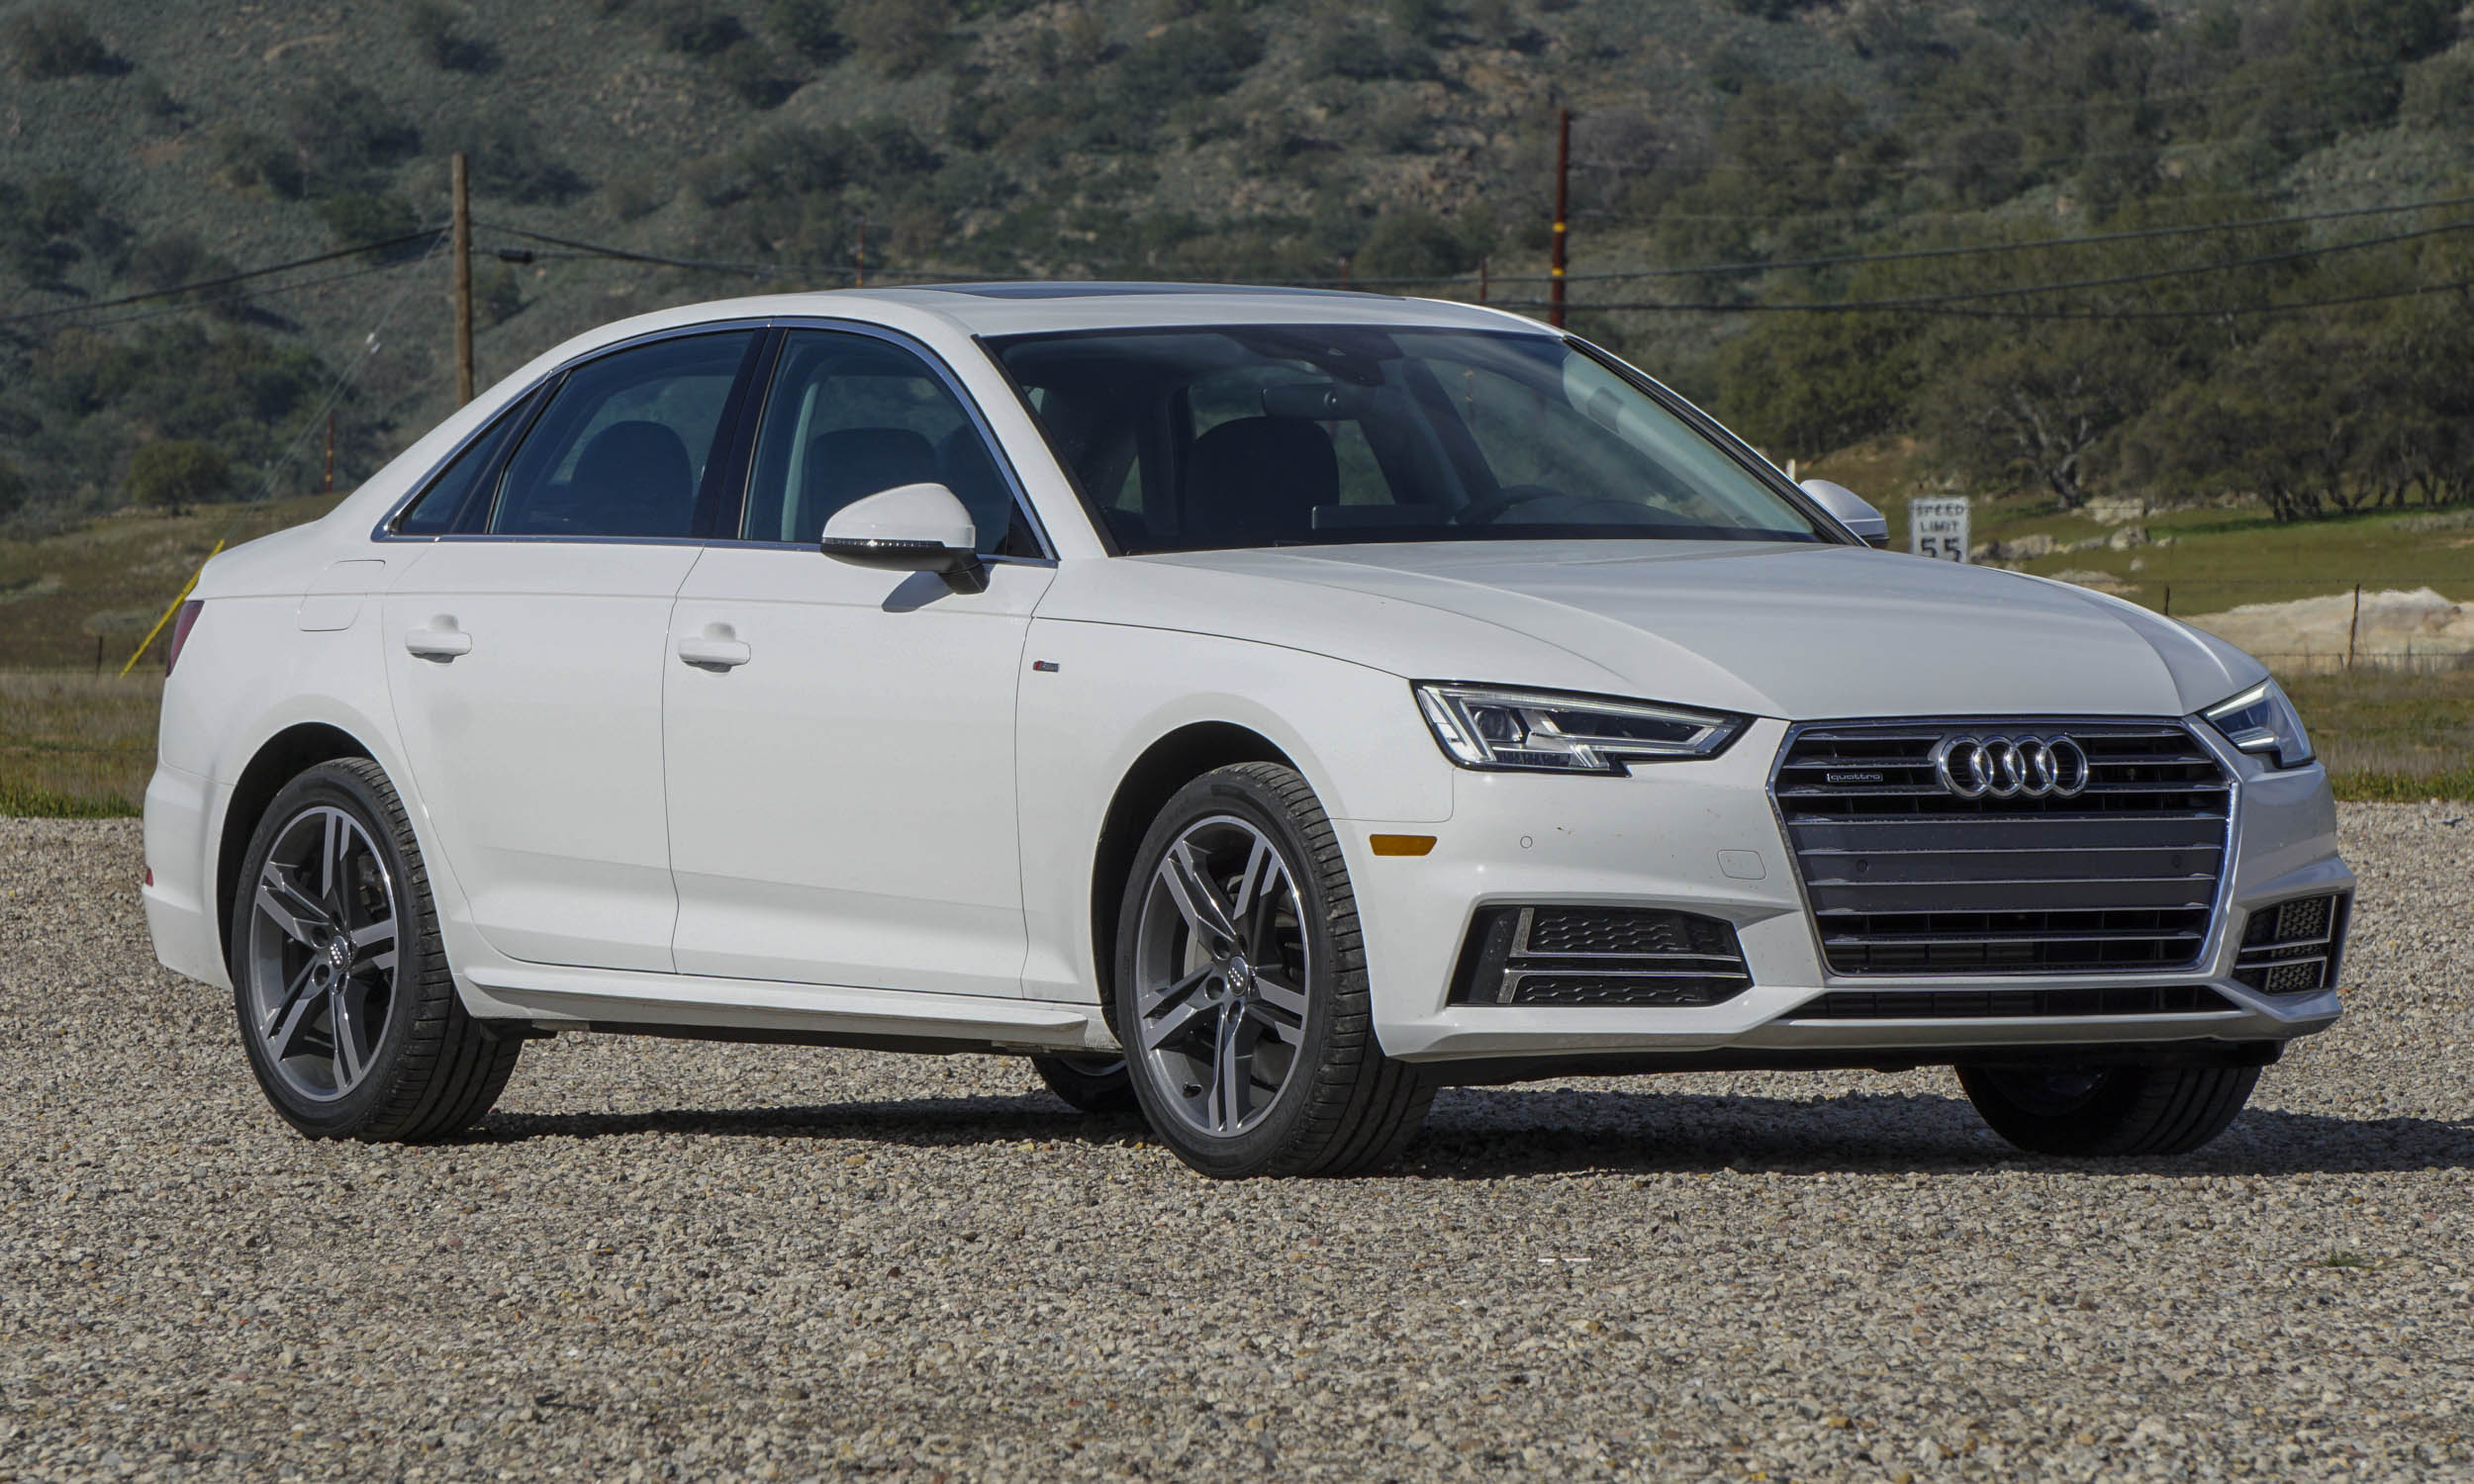 2017 audi a4 first drive review autonxt. Black Bedroom Furniture Sets. Home Design Ideas